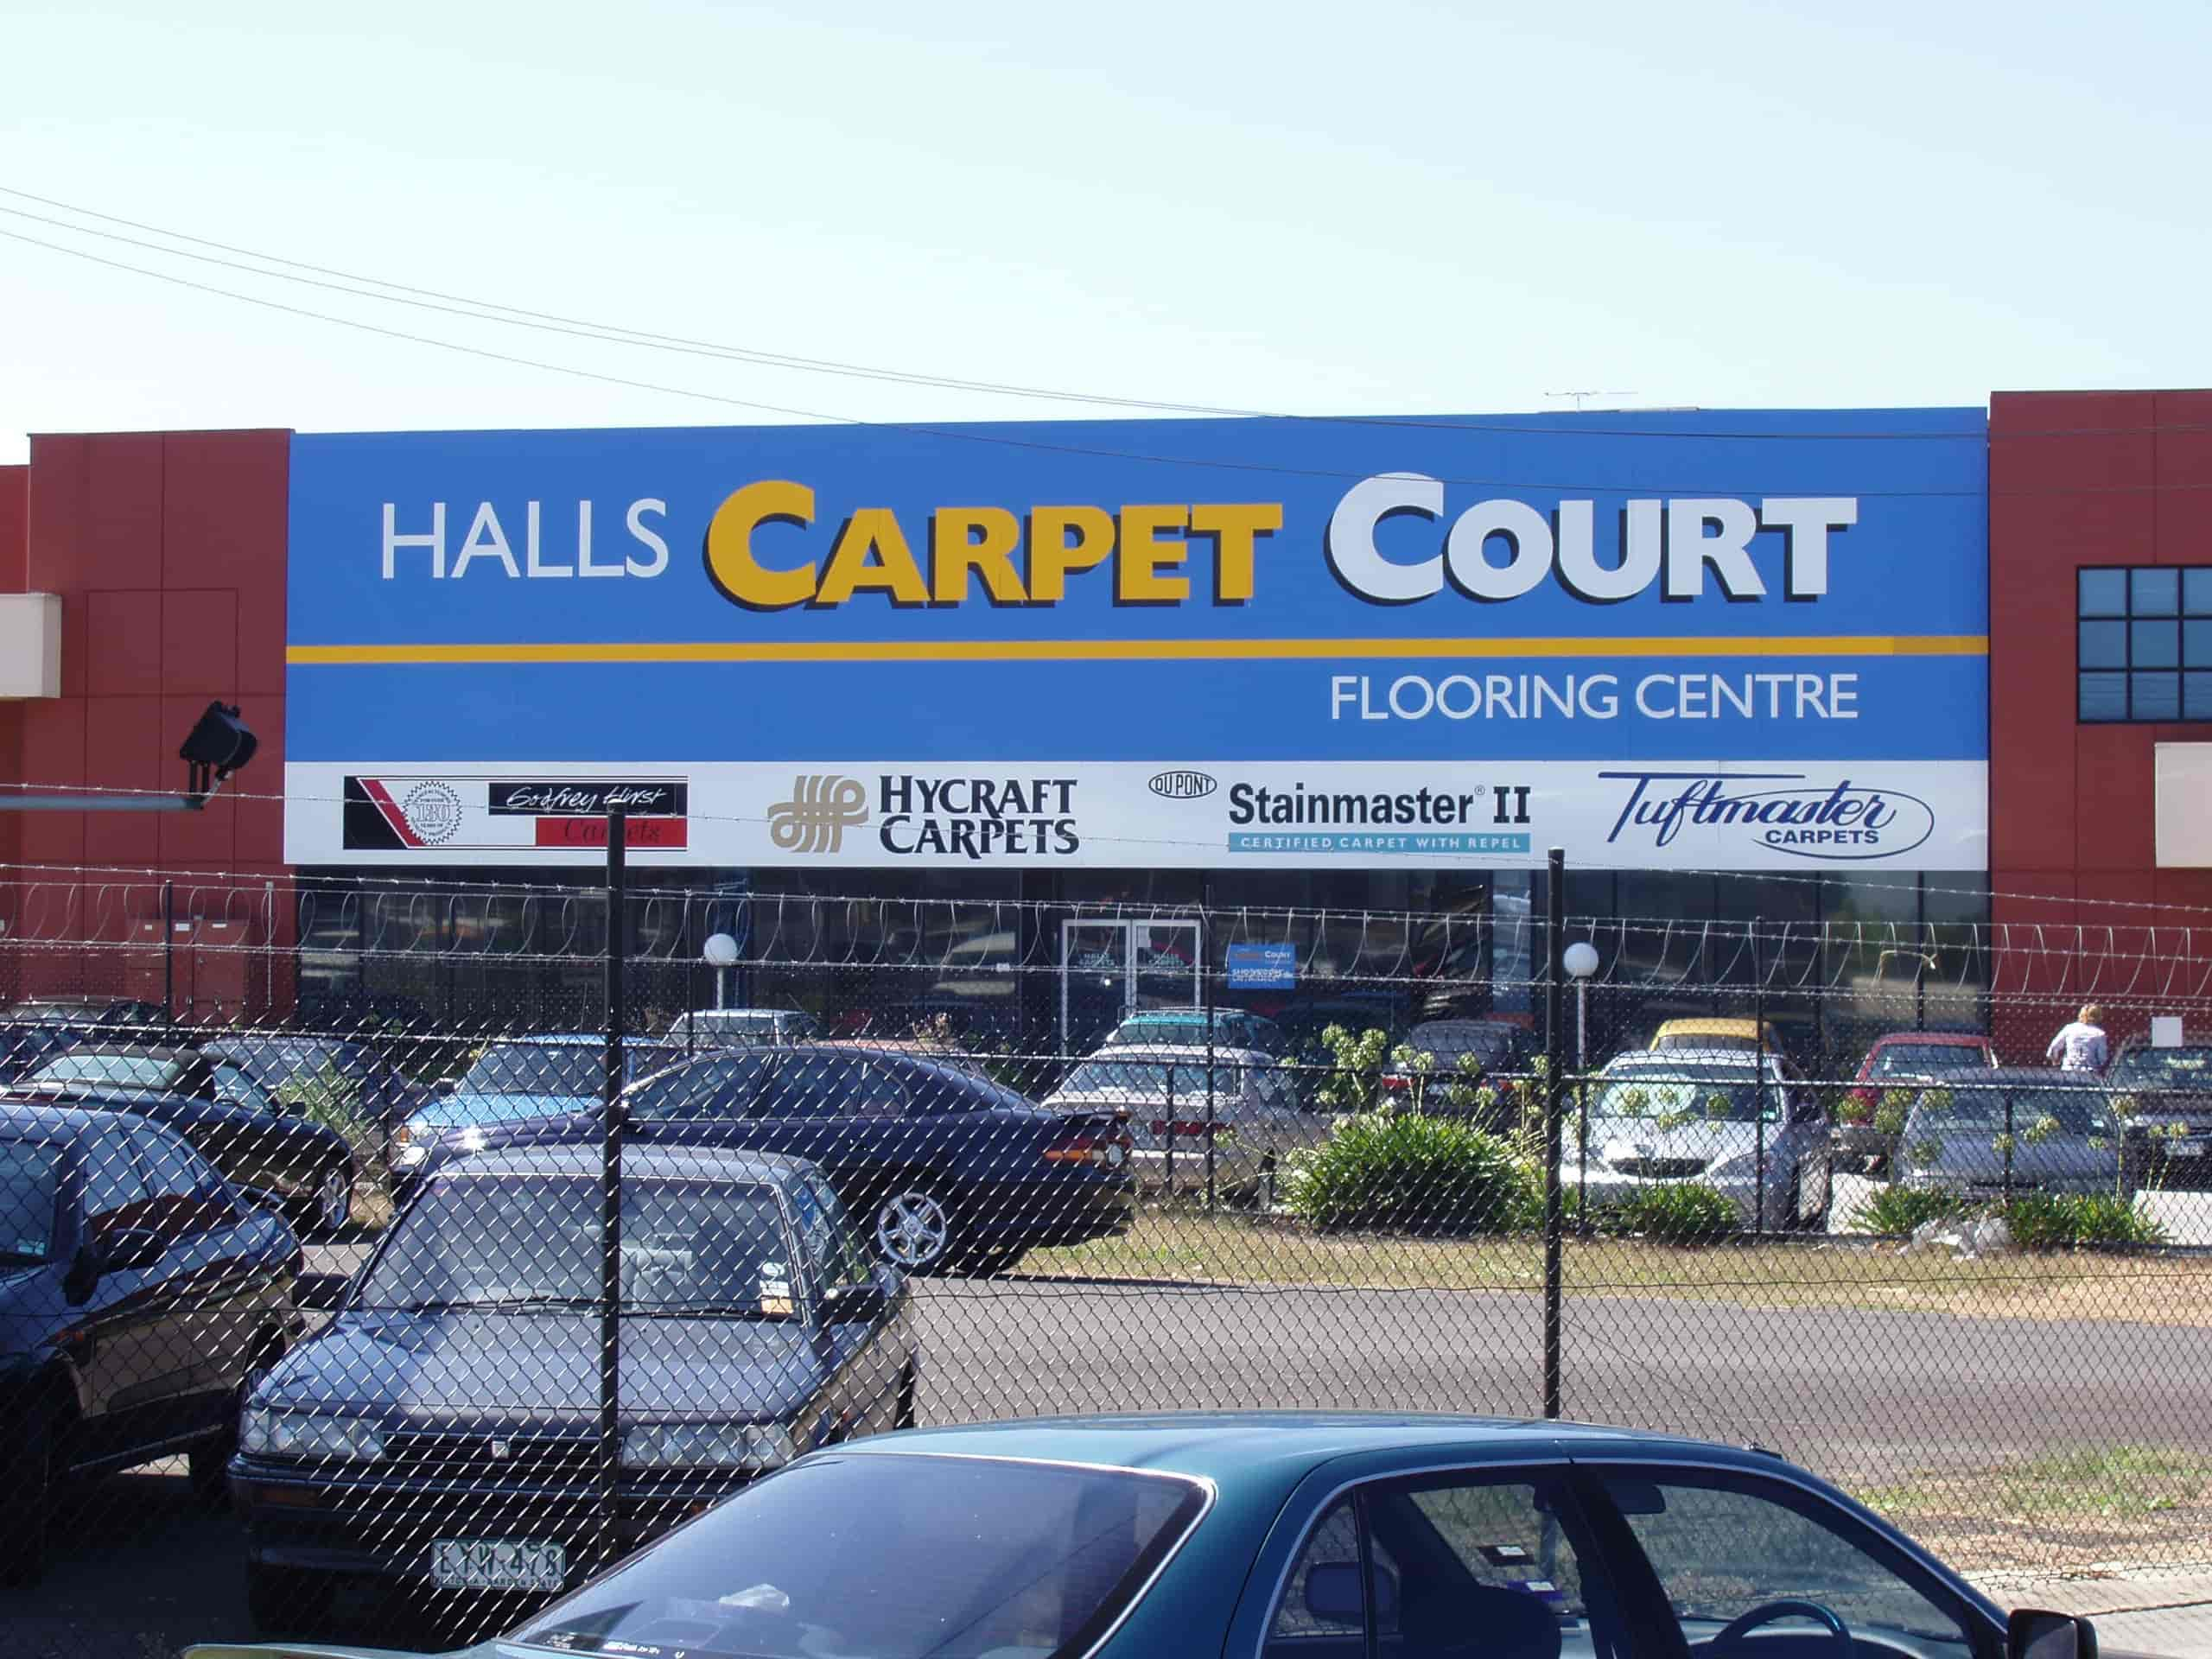 halls carpet court building signage